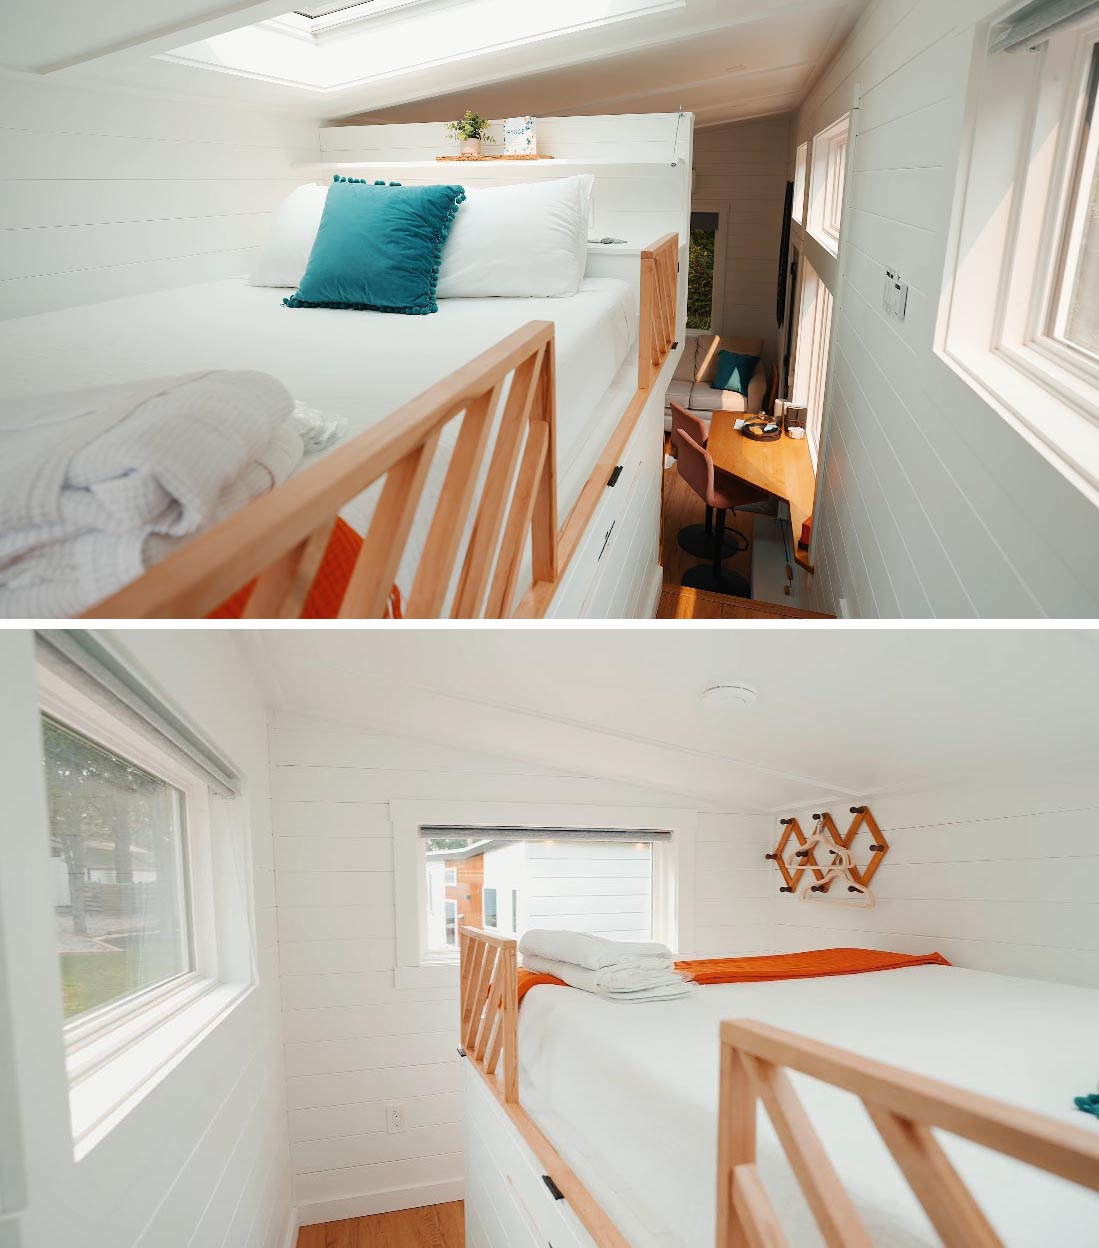 The loft bedroom of this Scandinavian-inspired tiny home includes a solar-powered skylight over the bed, letting you fall asleep looking at the stars.